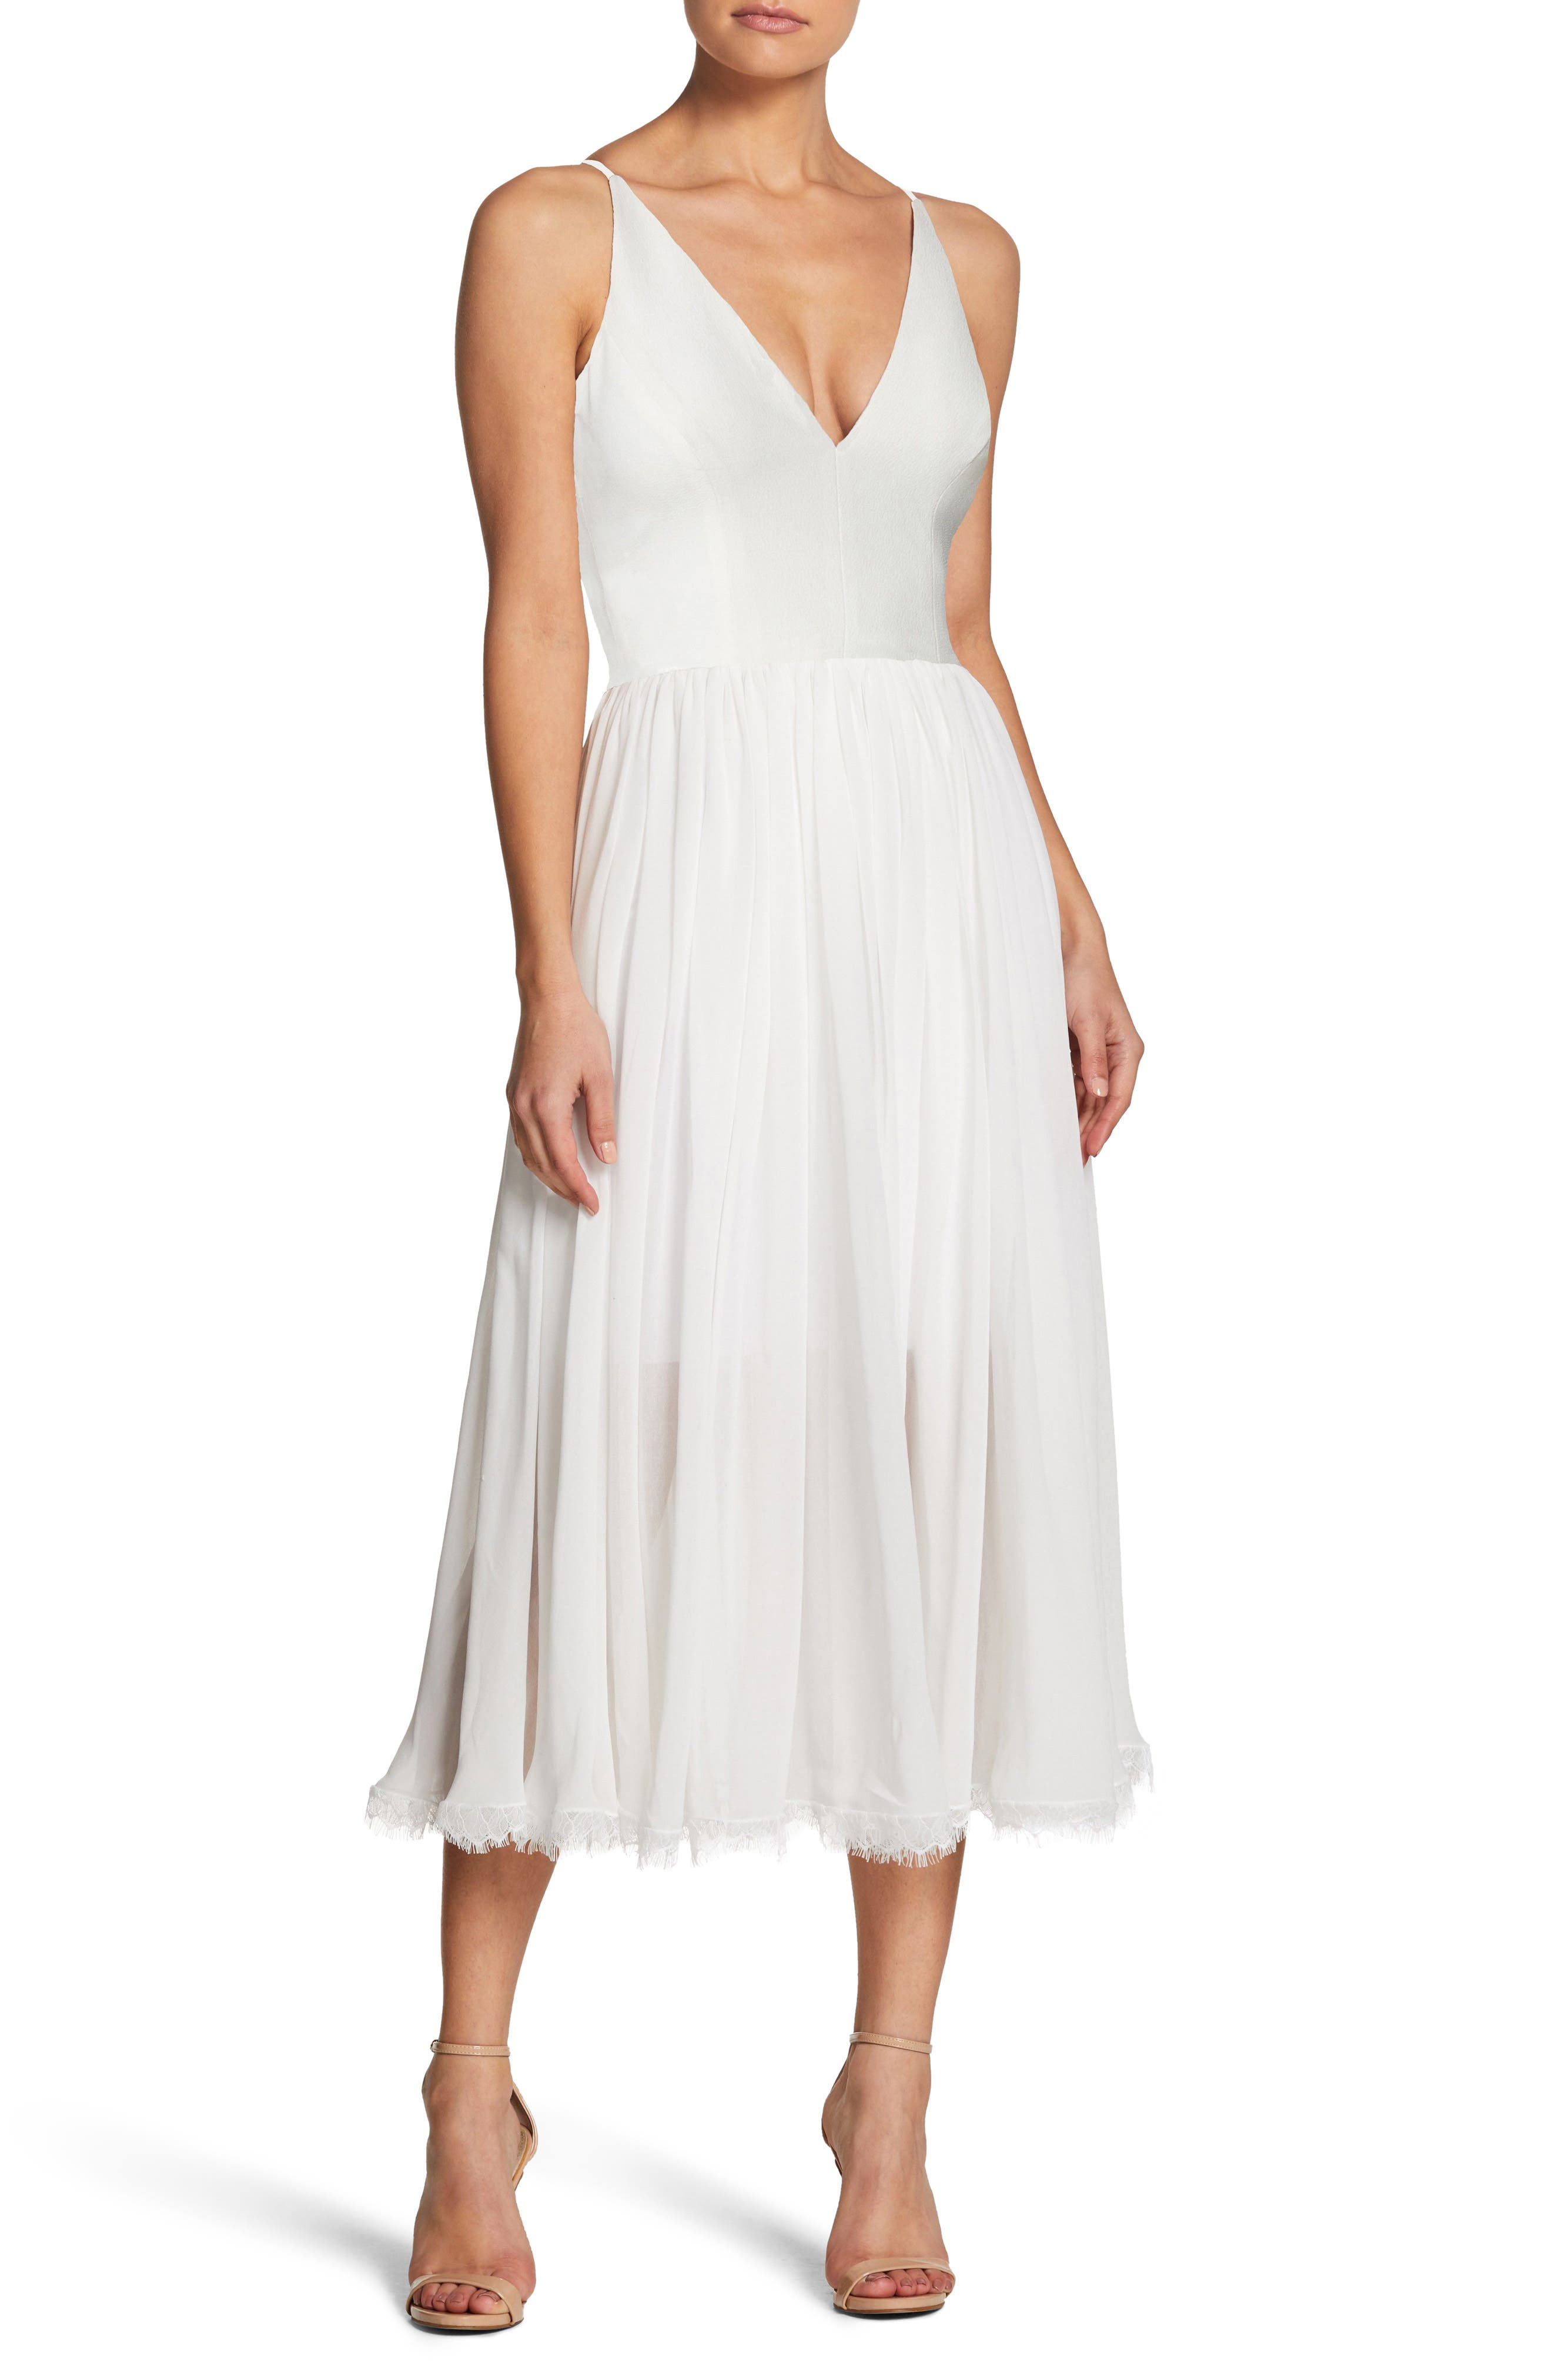 Dress for Women, Evening Cocktail Party On Sale, White, Cotton, 2017, 10 12 14 8 Prada